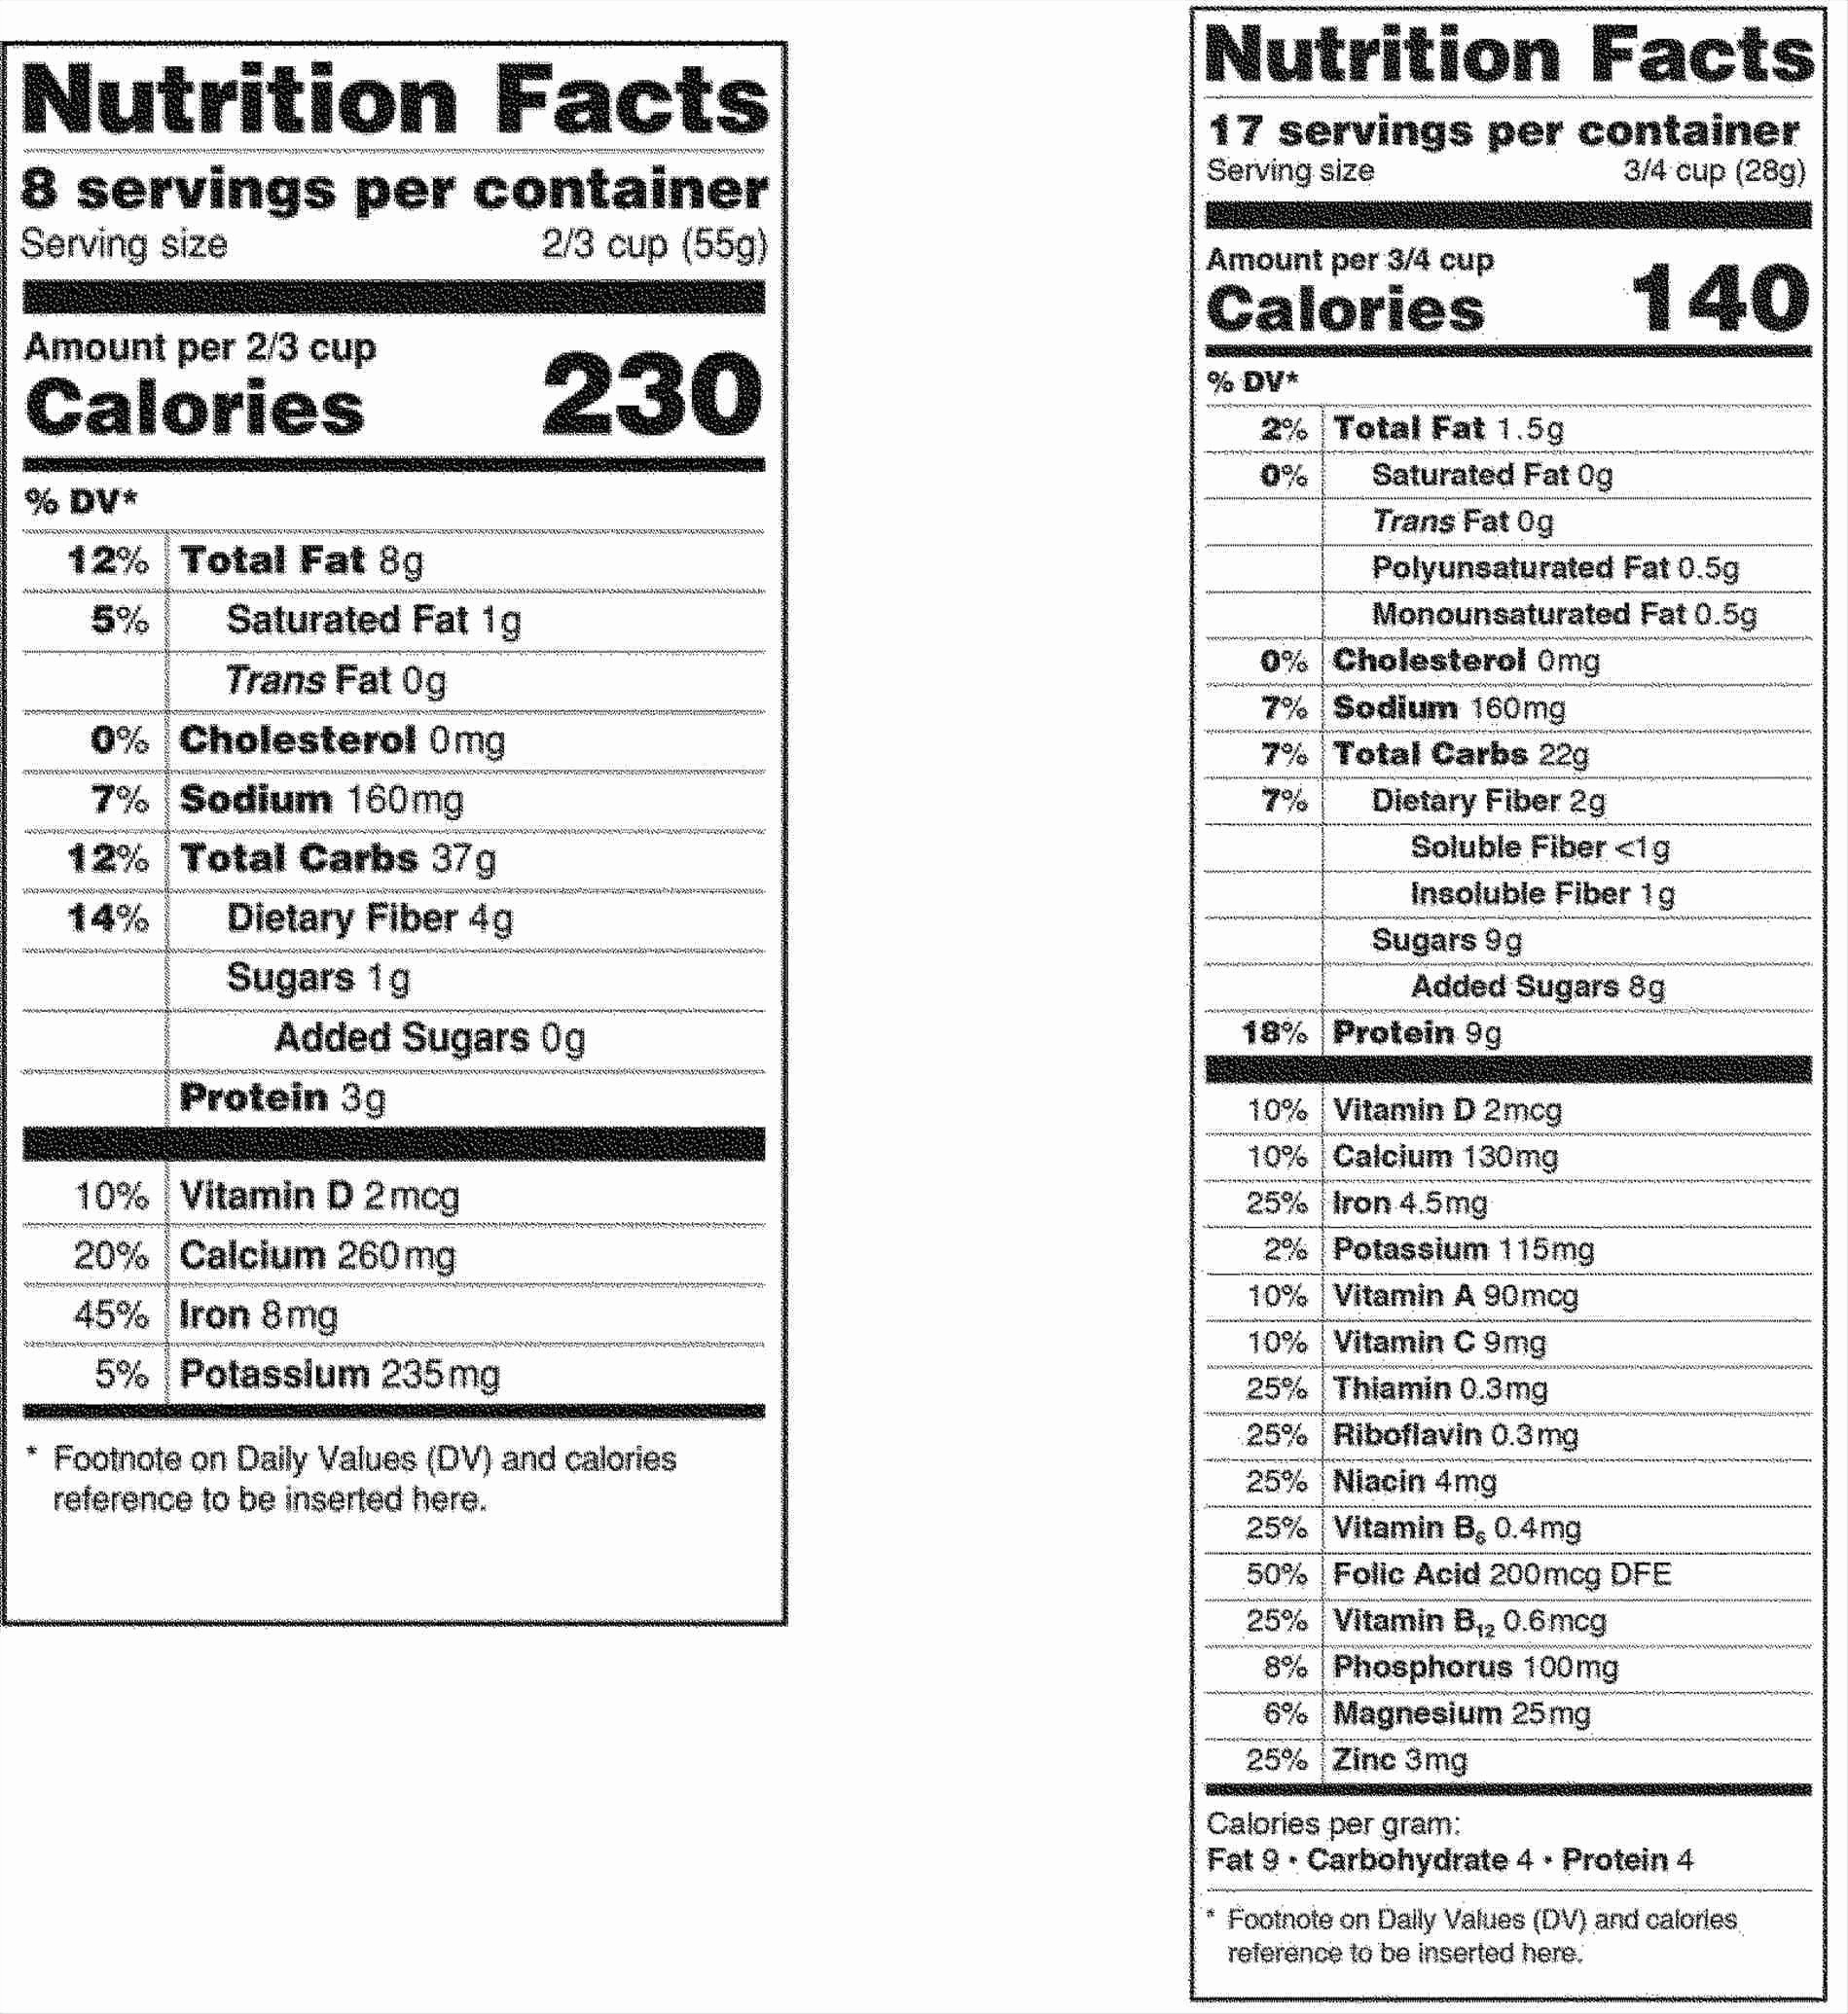 Nutrition Facts Template Excel Download Lovely Nutrition Label Template Blank